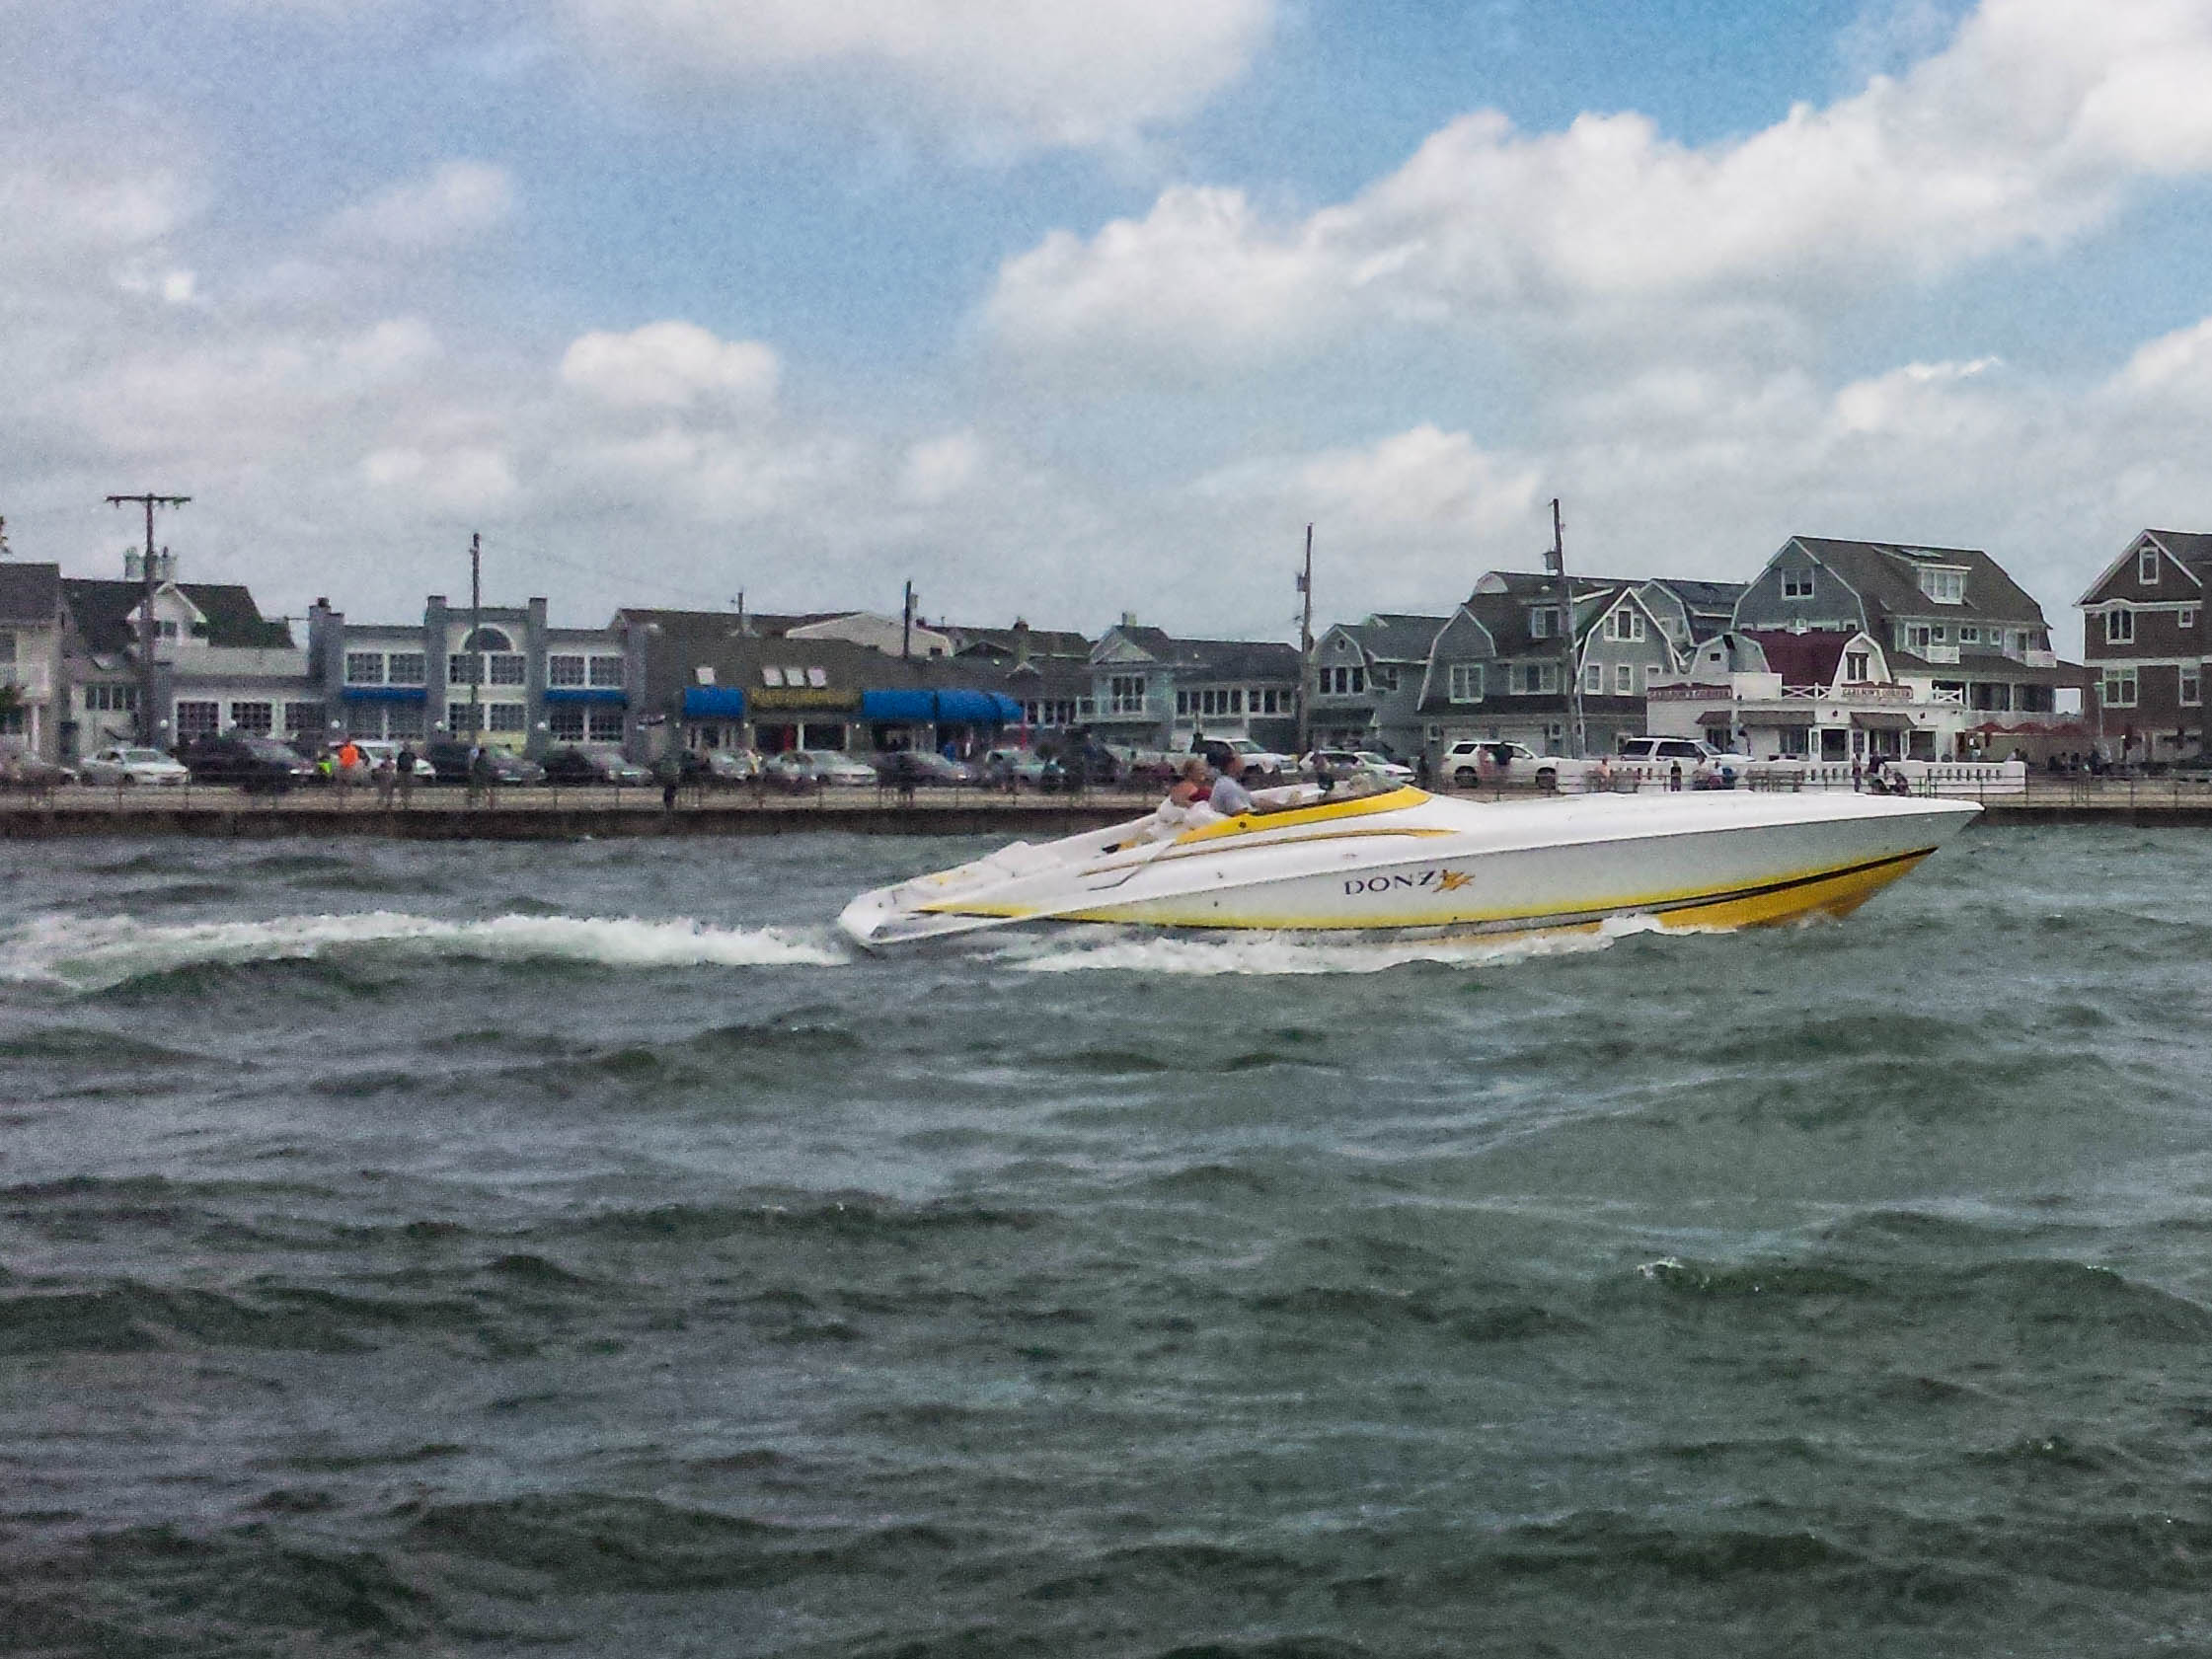 RAW VIDEO: Powerboats race in Point Pleasant Beach during the Offshore Grand Prix Sunday